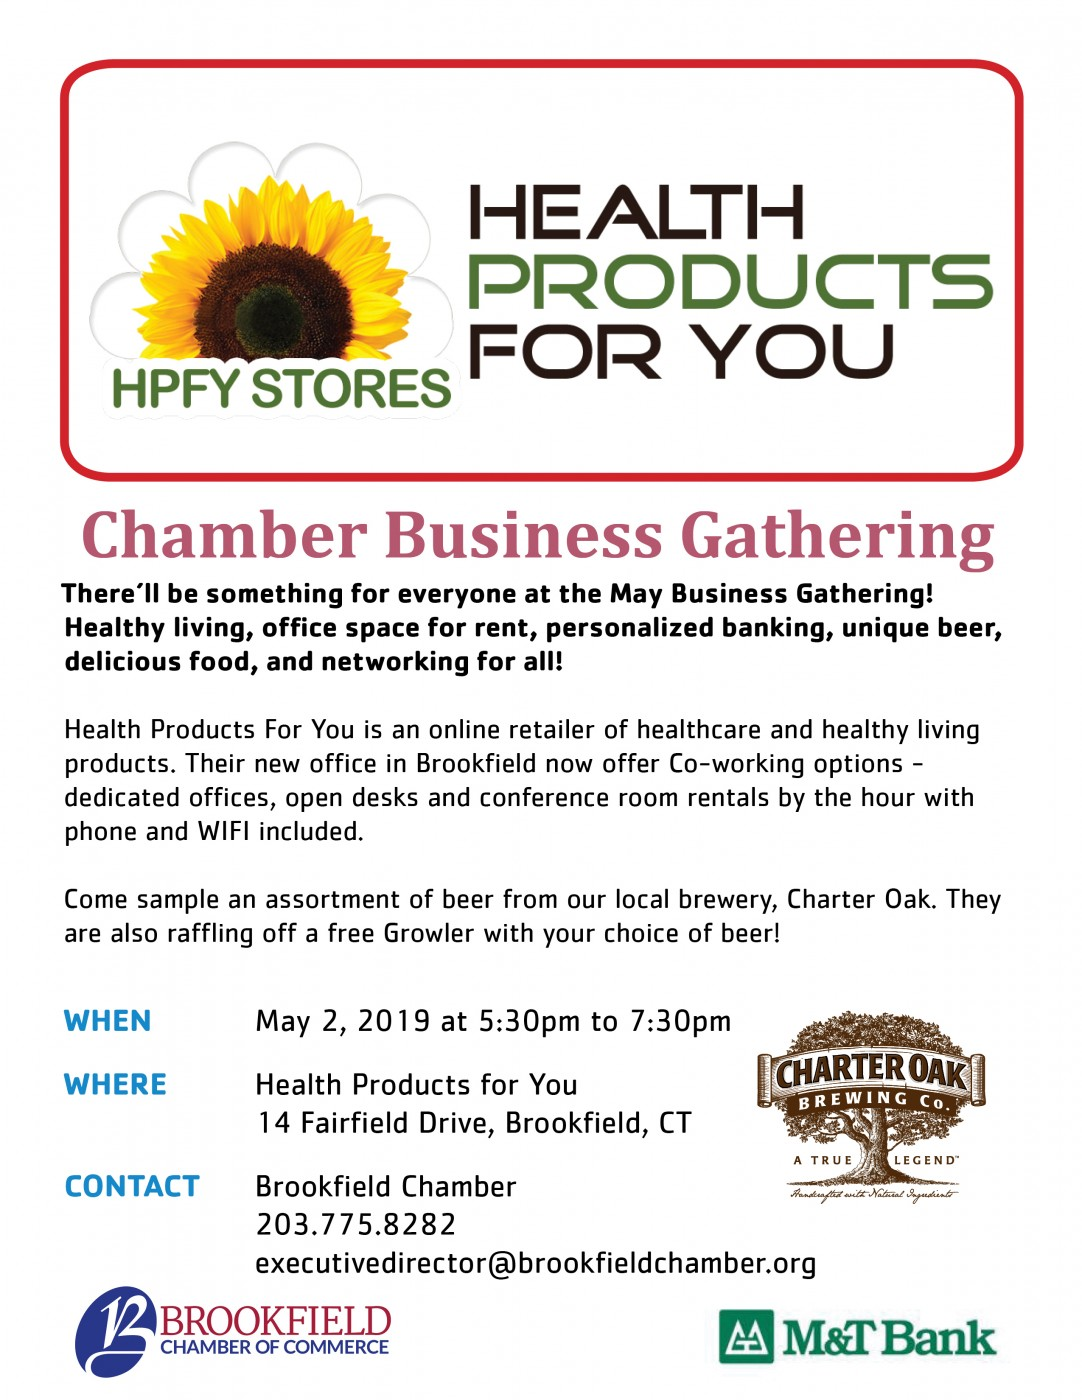 Health Products For You=There'll be something for everyone at the May Business Gathering! Healthy living, office space for rent, personalized banking, unique beer, delicious food, and networking for all! Health Products For You is an online retailer of healthcare and healthy living products. Their new office in Brookfield now offer Co-working options - dedicated offices, open desks and conference room rentals by the hour with phone and WIFI included. Come sample an assortment of beer from our local brewery, Charter Oak. They are also raffling off a free Growler with your choice of beer!